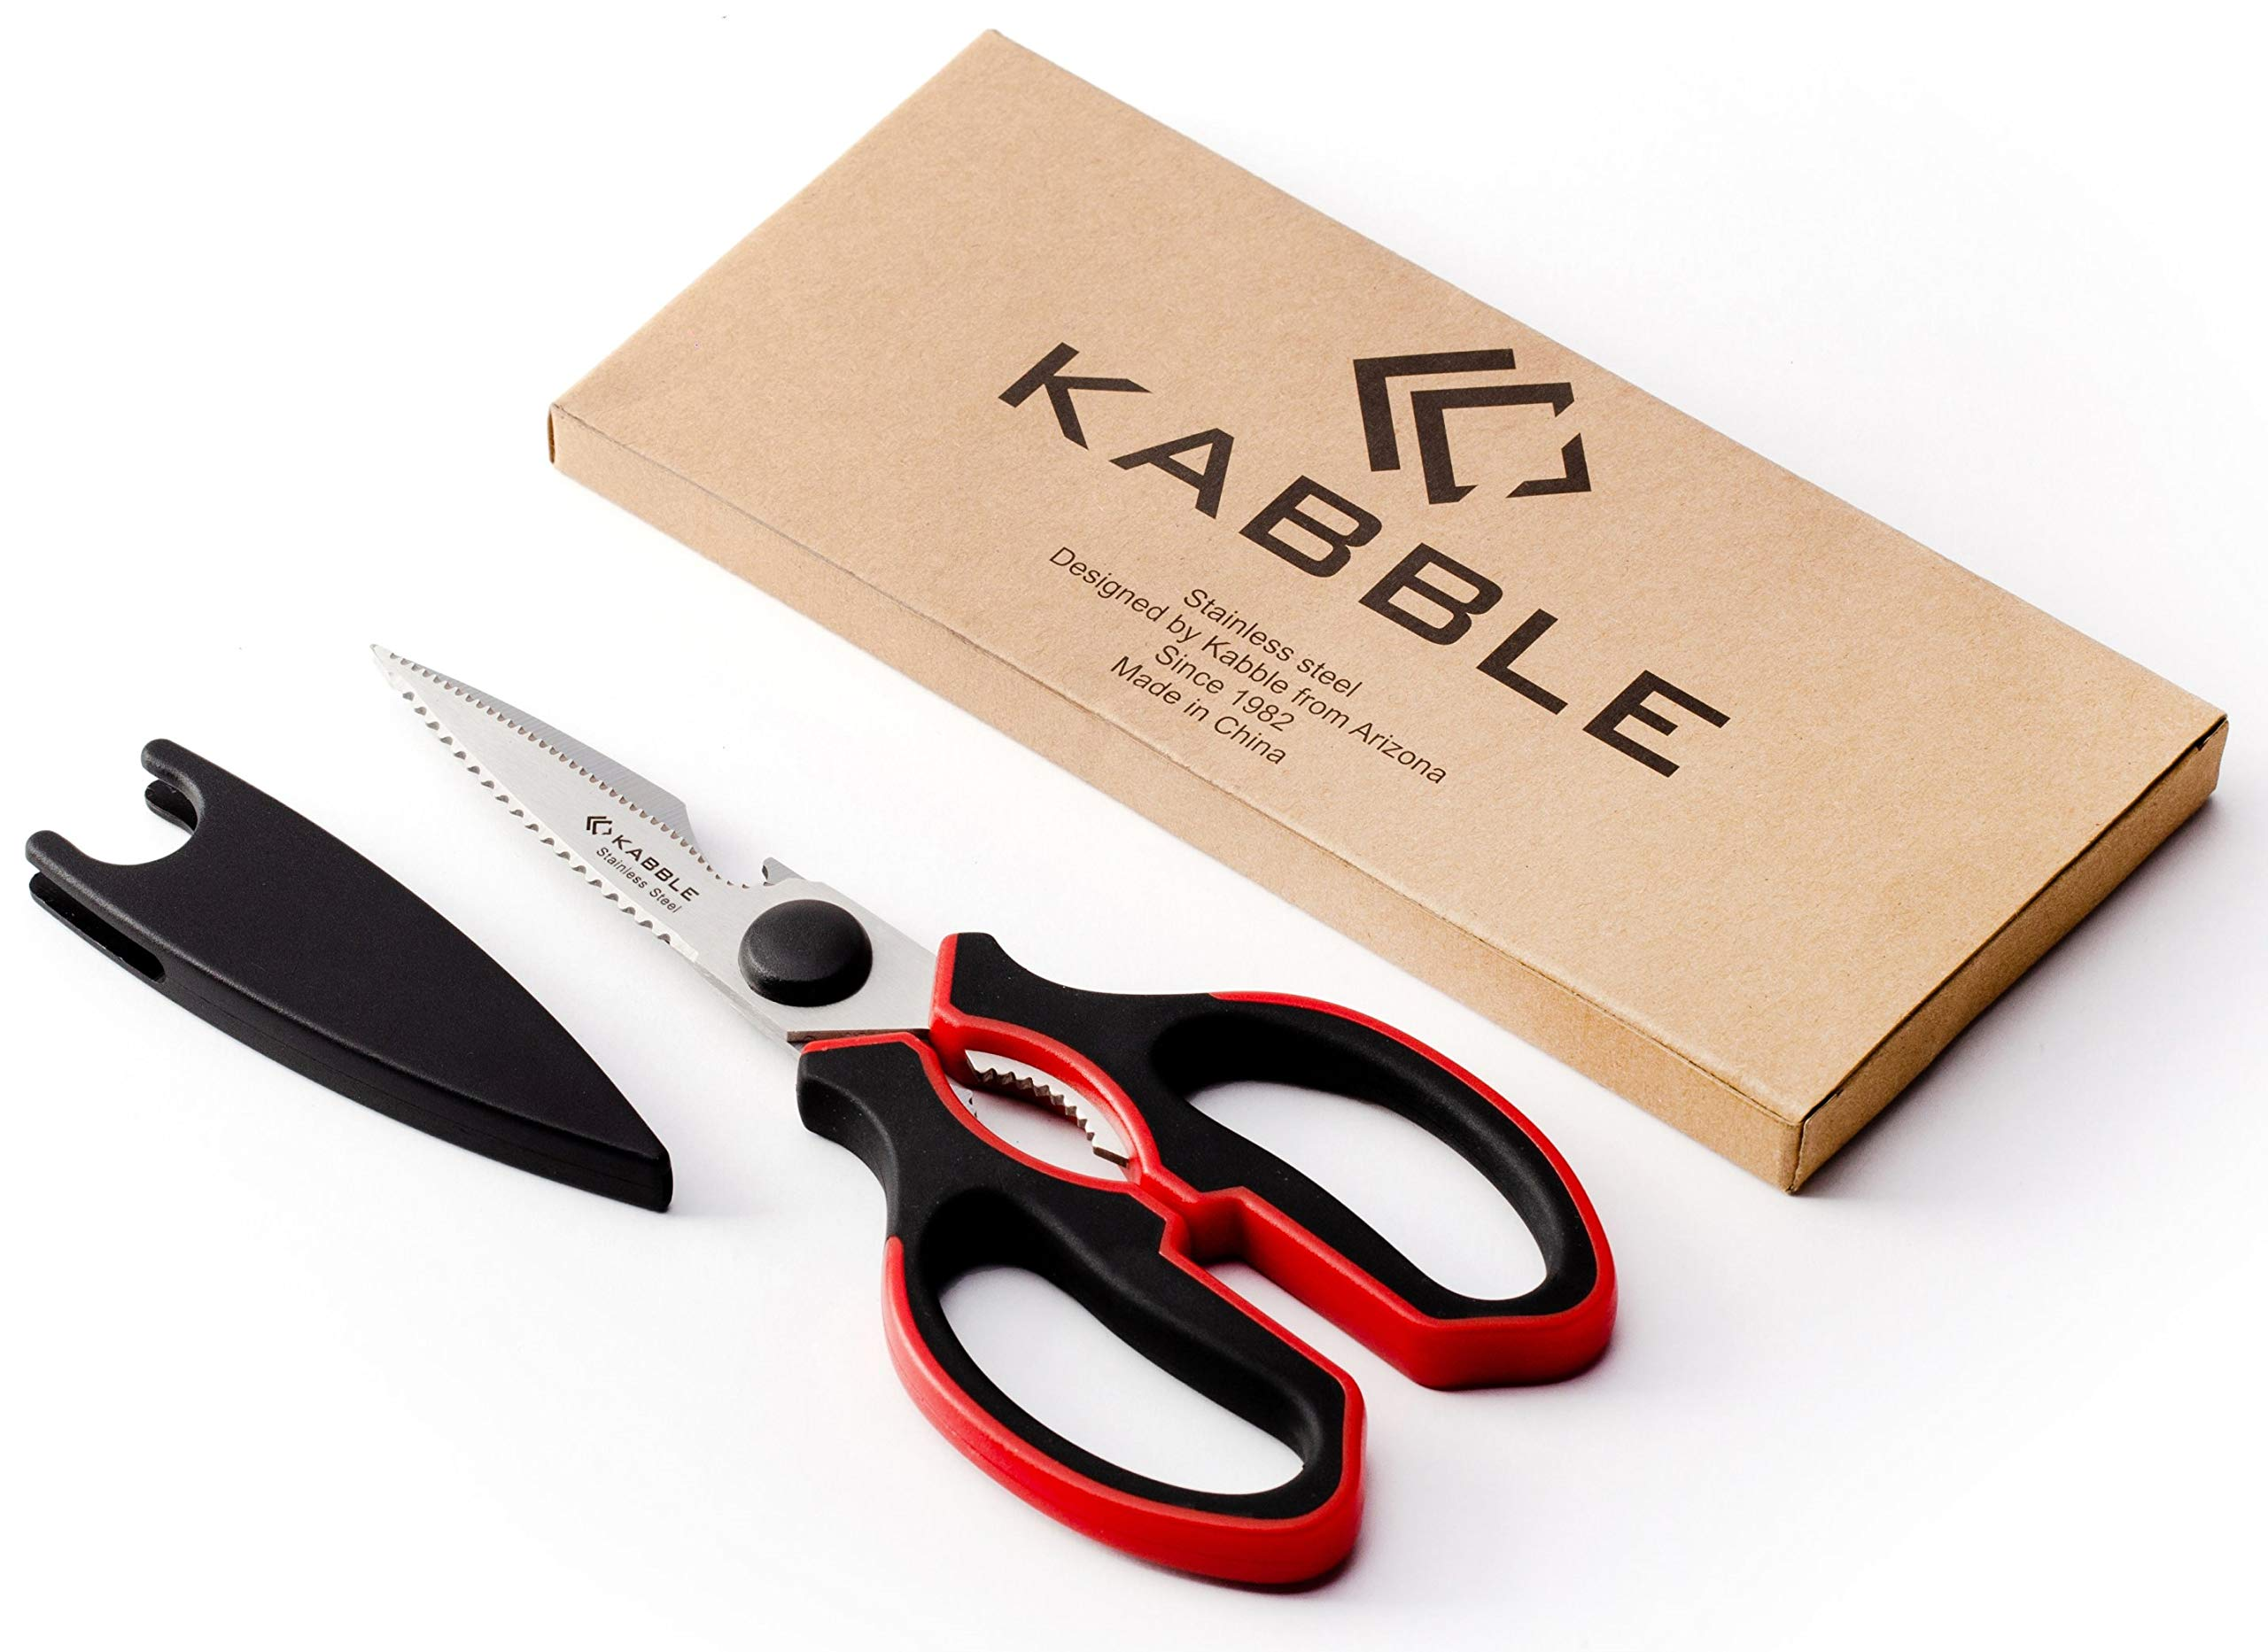 MORICAI Premium Heavy Duty Kitchen Shears, Kabble Multifunction Kitchen Scissors, Latest and Smart Design, As Sharp As Any Knife, Red-Black by MORICAI